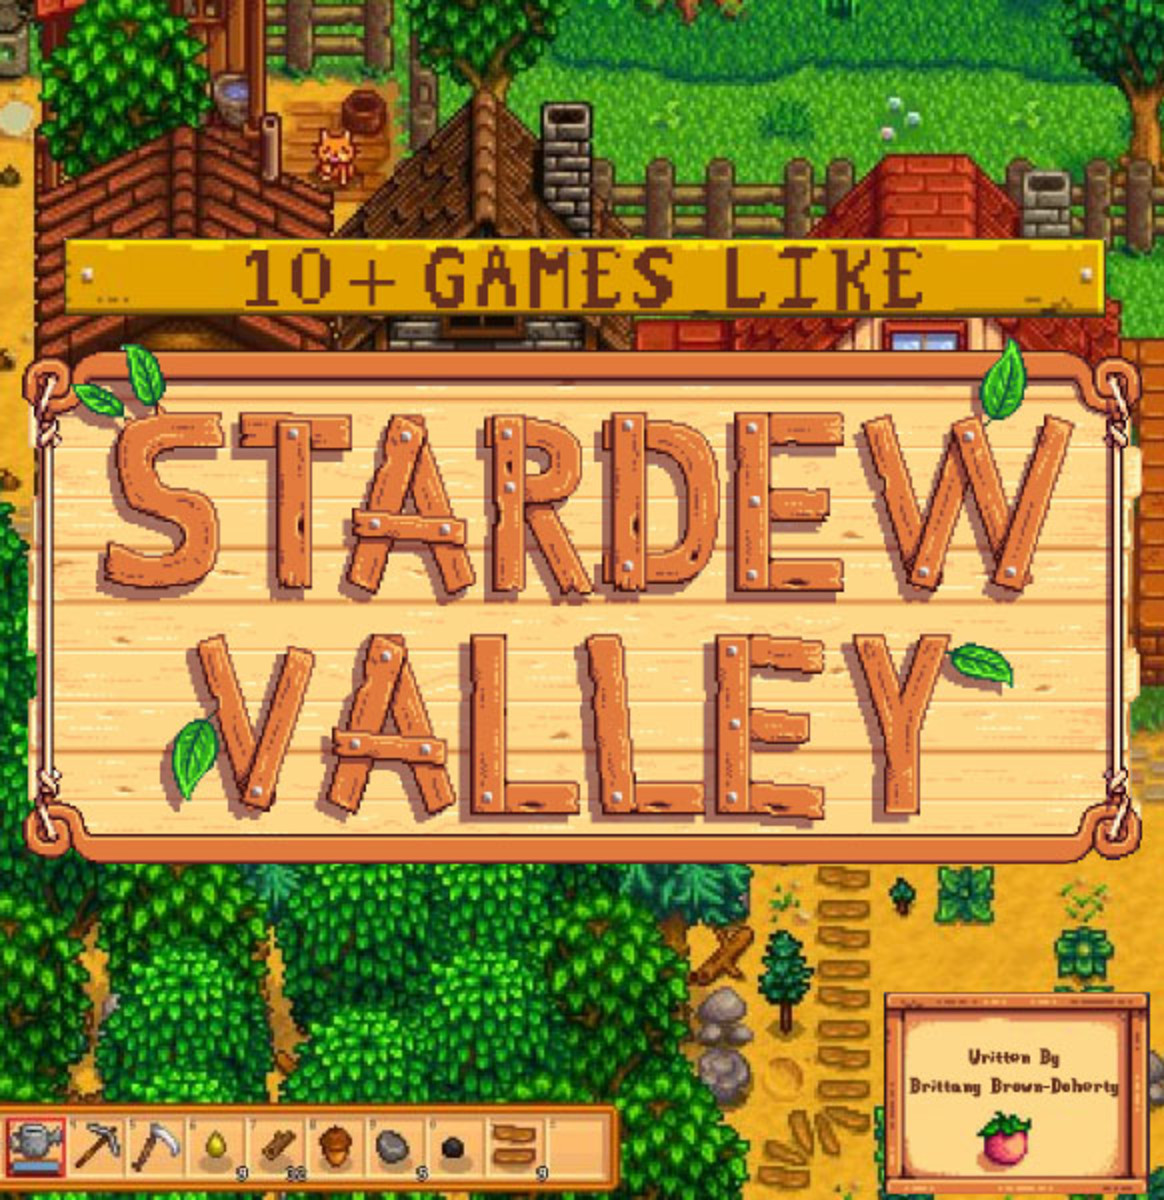 10+ Games Like Stardew Valley